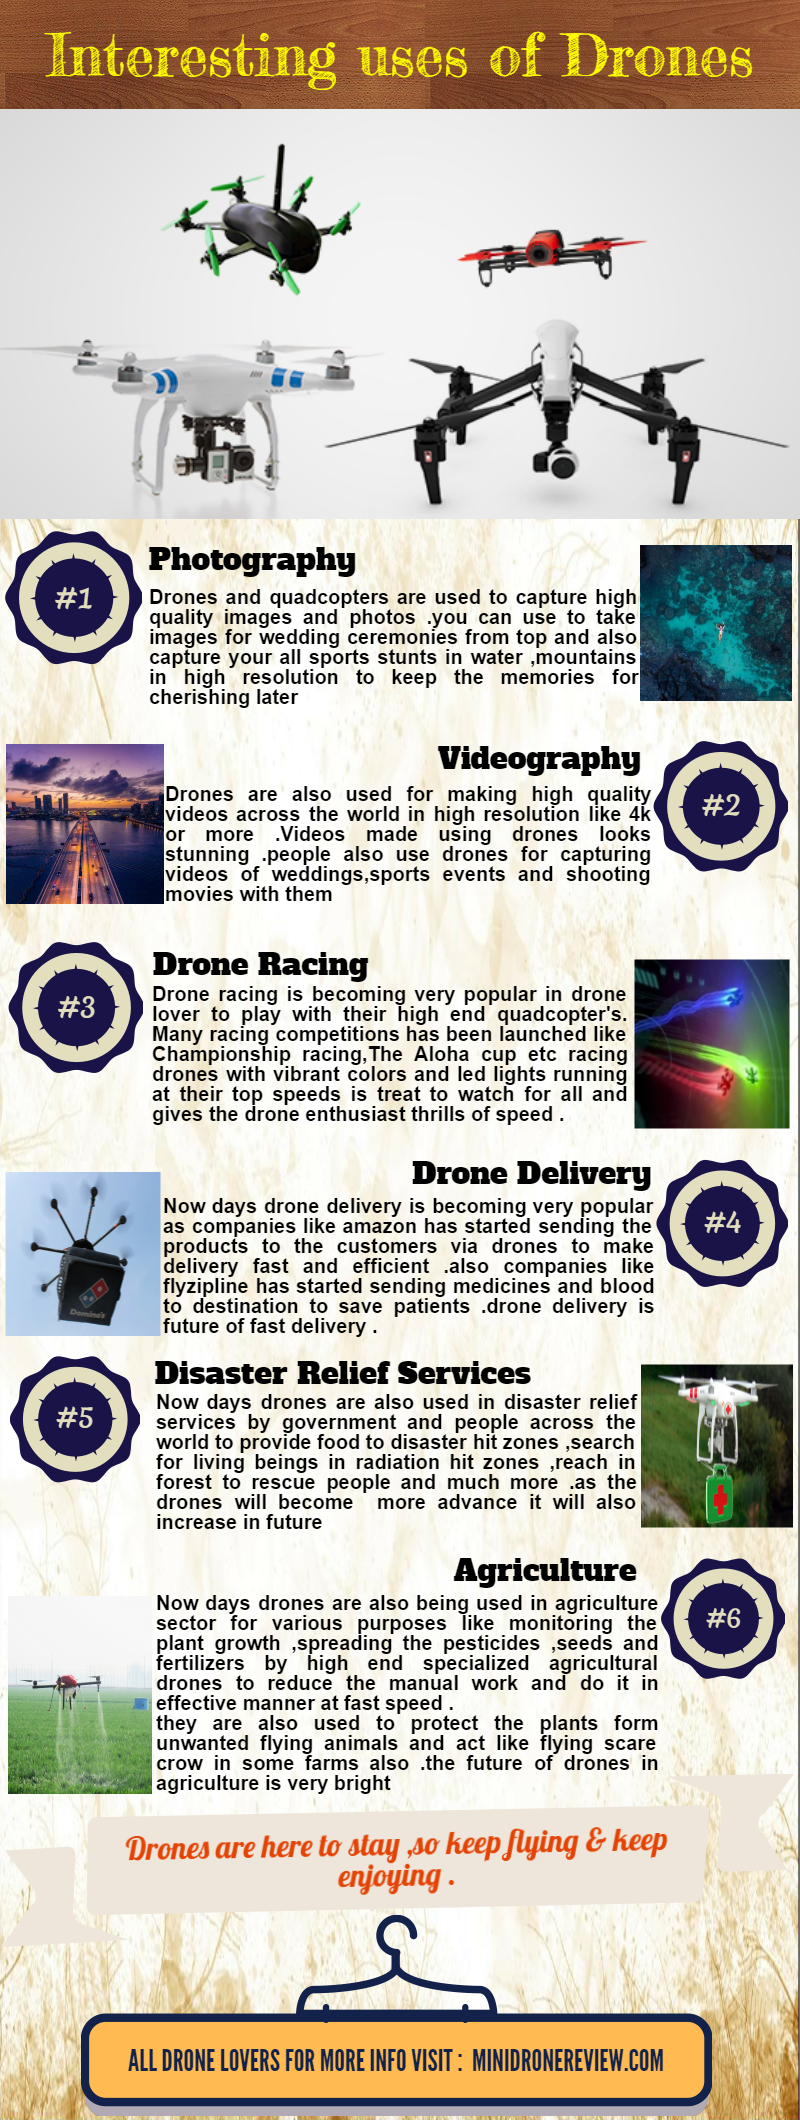 Infographic : Amazing uses of drones